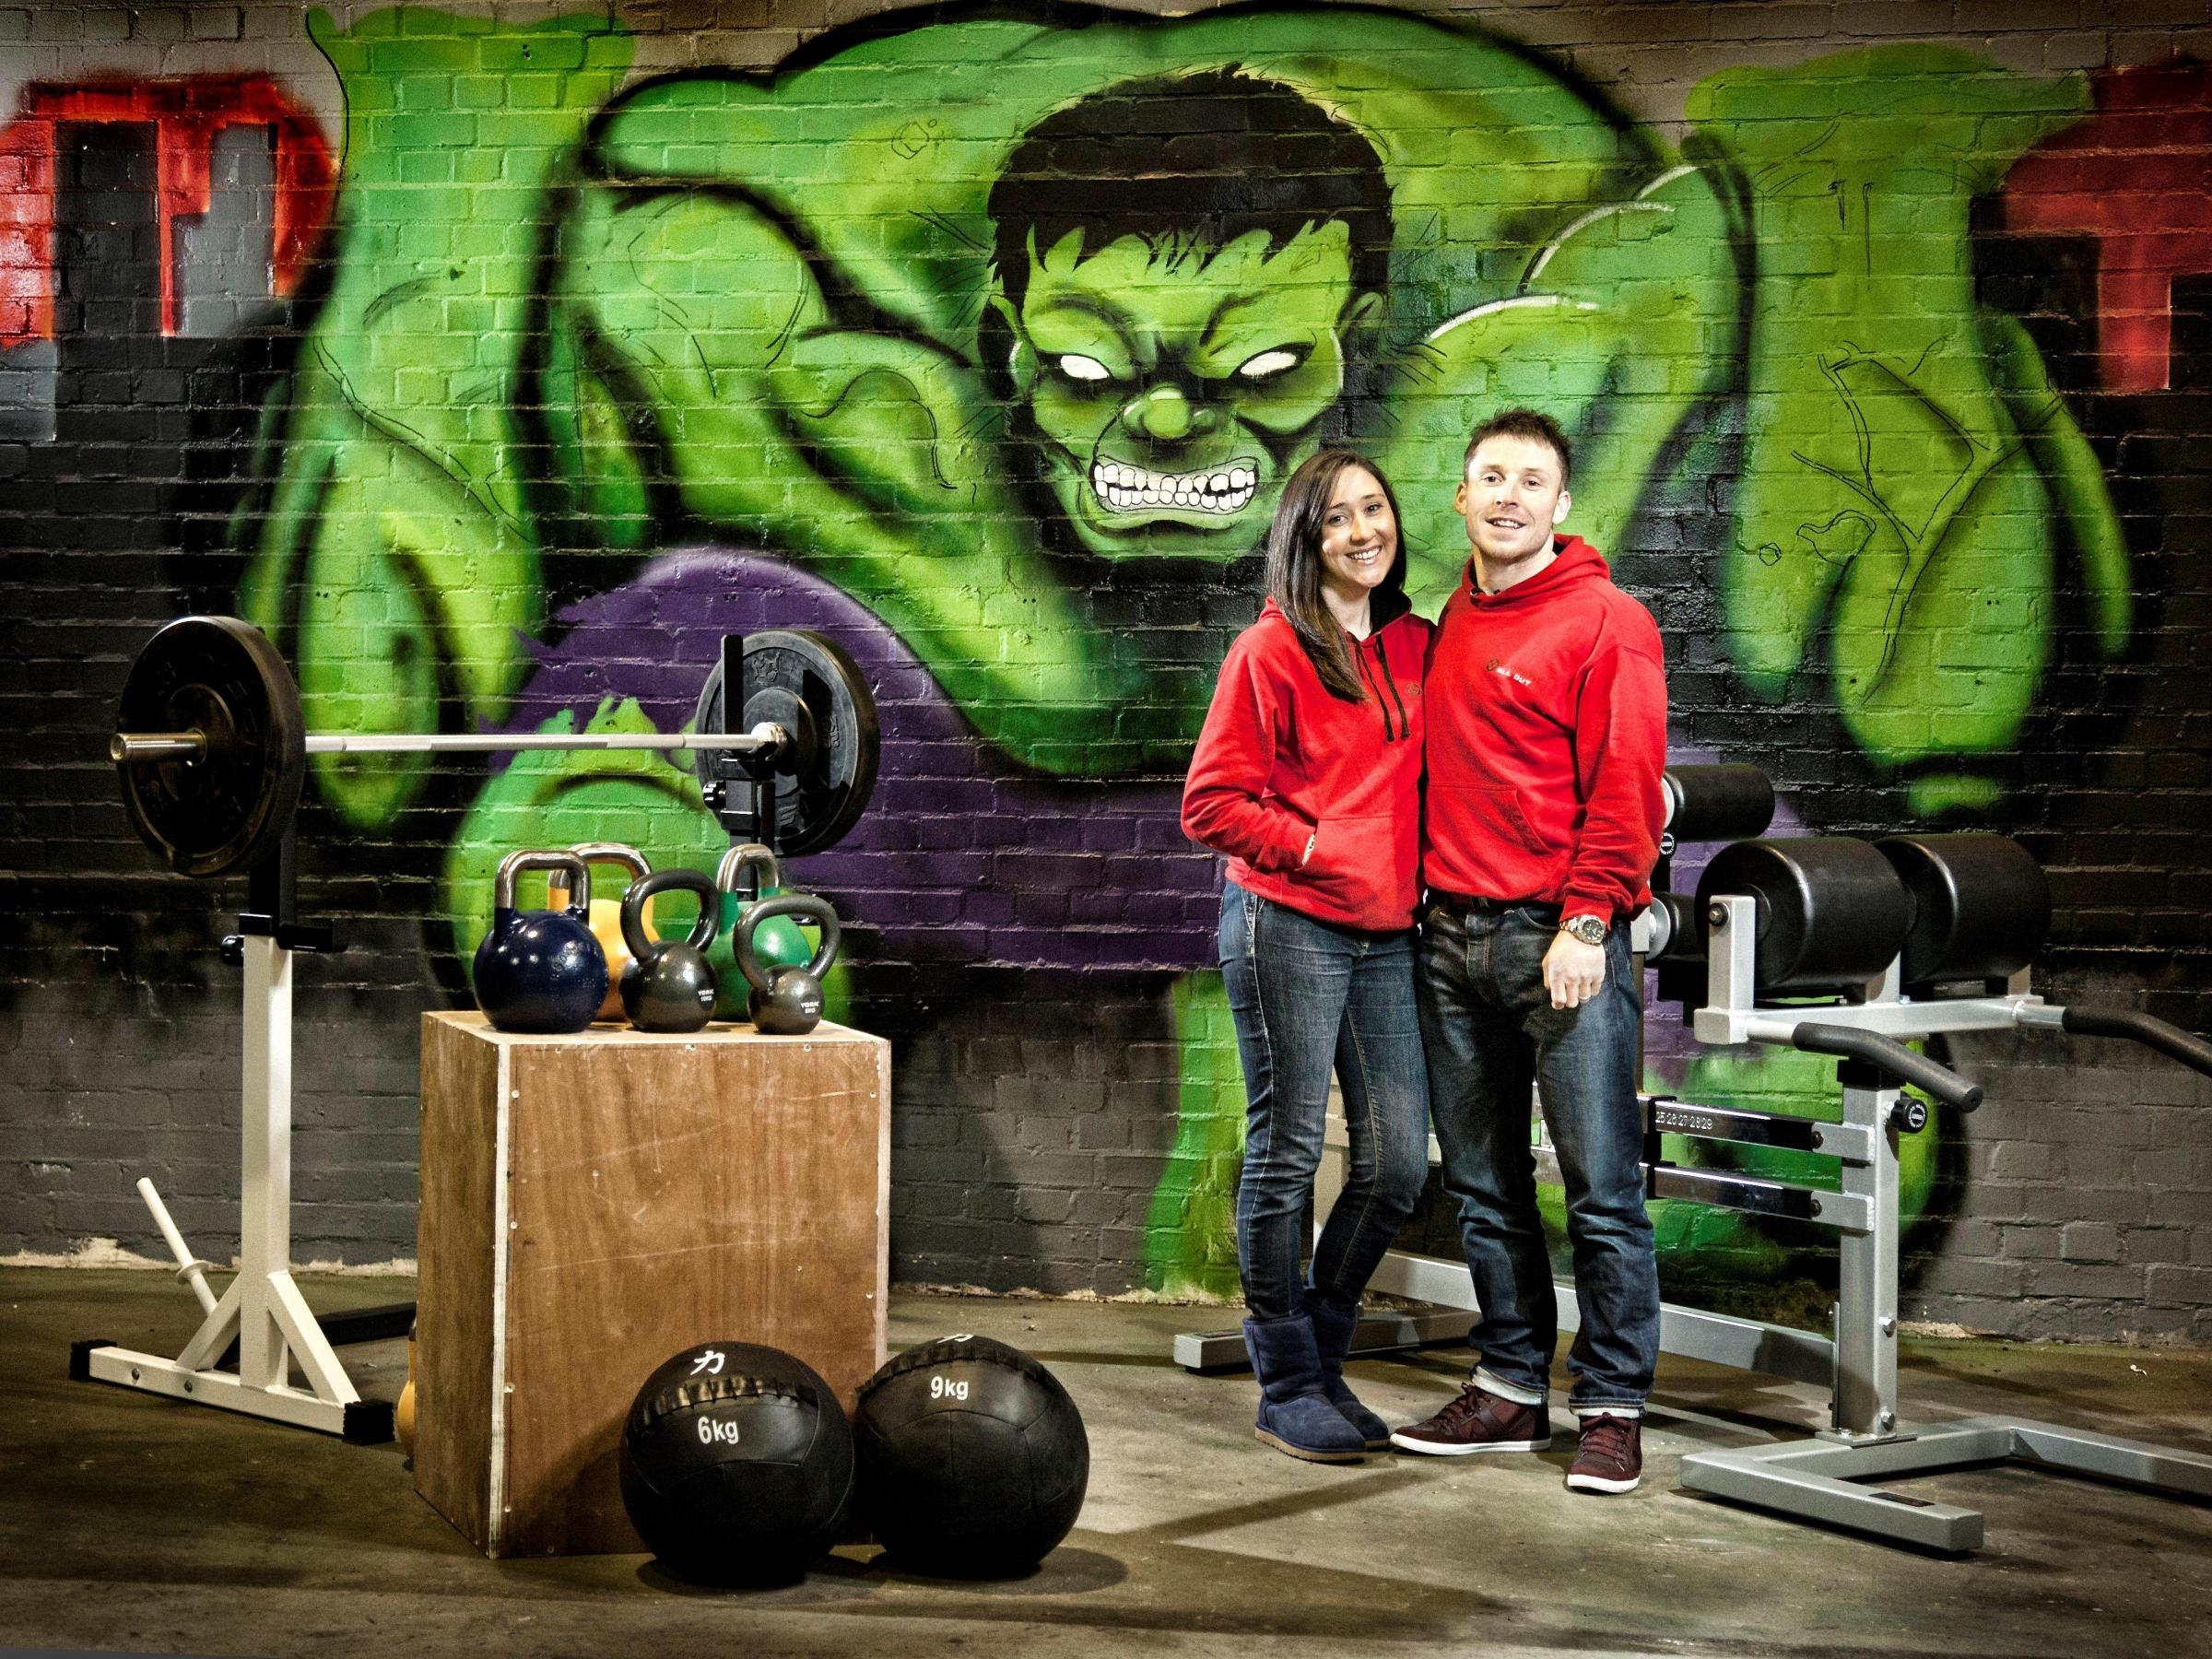 Vikki and Terry Anderson at CrossFit All Out, their new fitness venture in Newton Aycliffe. Graffiti art by Dan Walls and Oxo. Photo by Eye Dream Photography